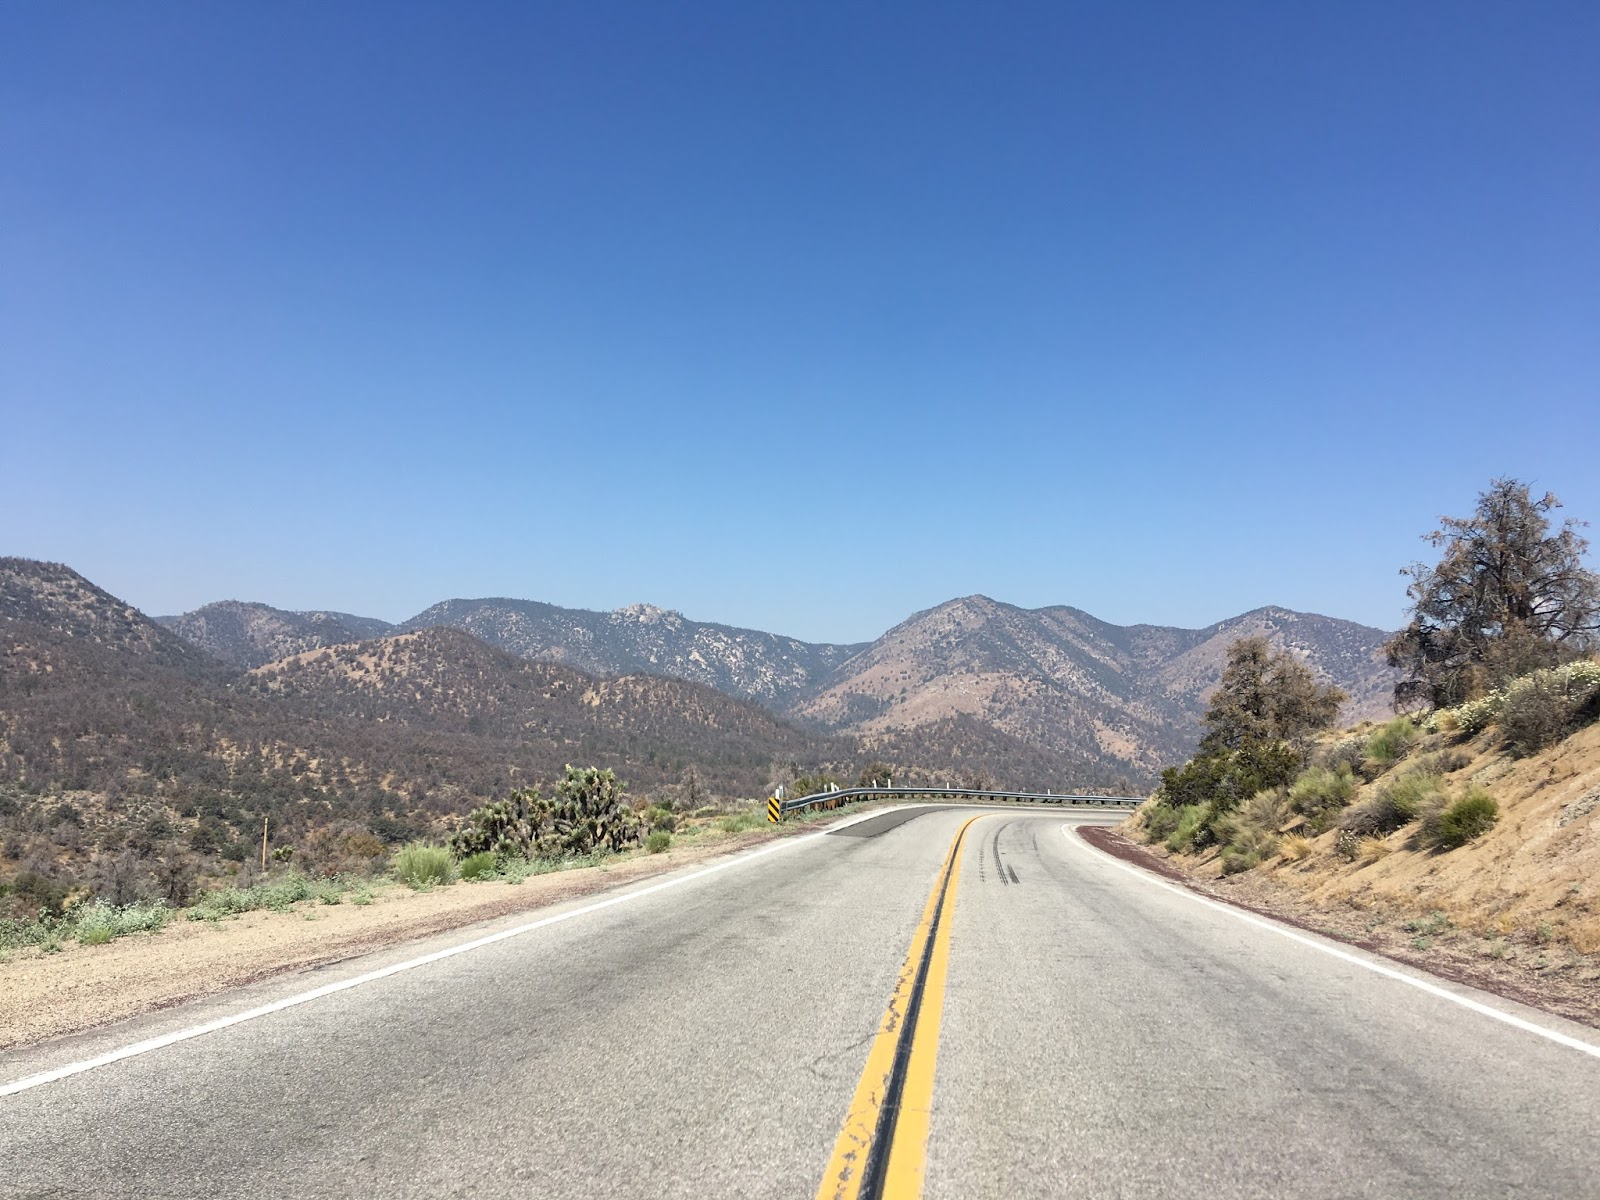 the kern river valley is very apparent descending walker pass the curve ahead isn t as daunting as the 20 mph advisory speed would suggest